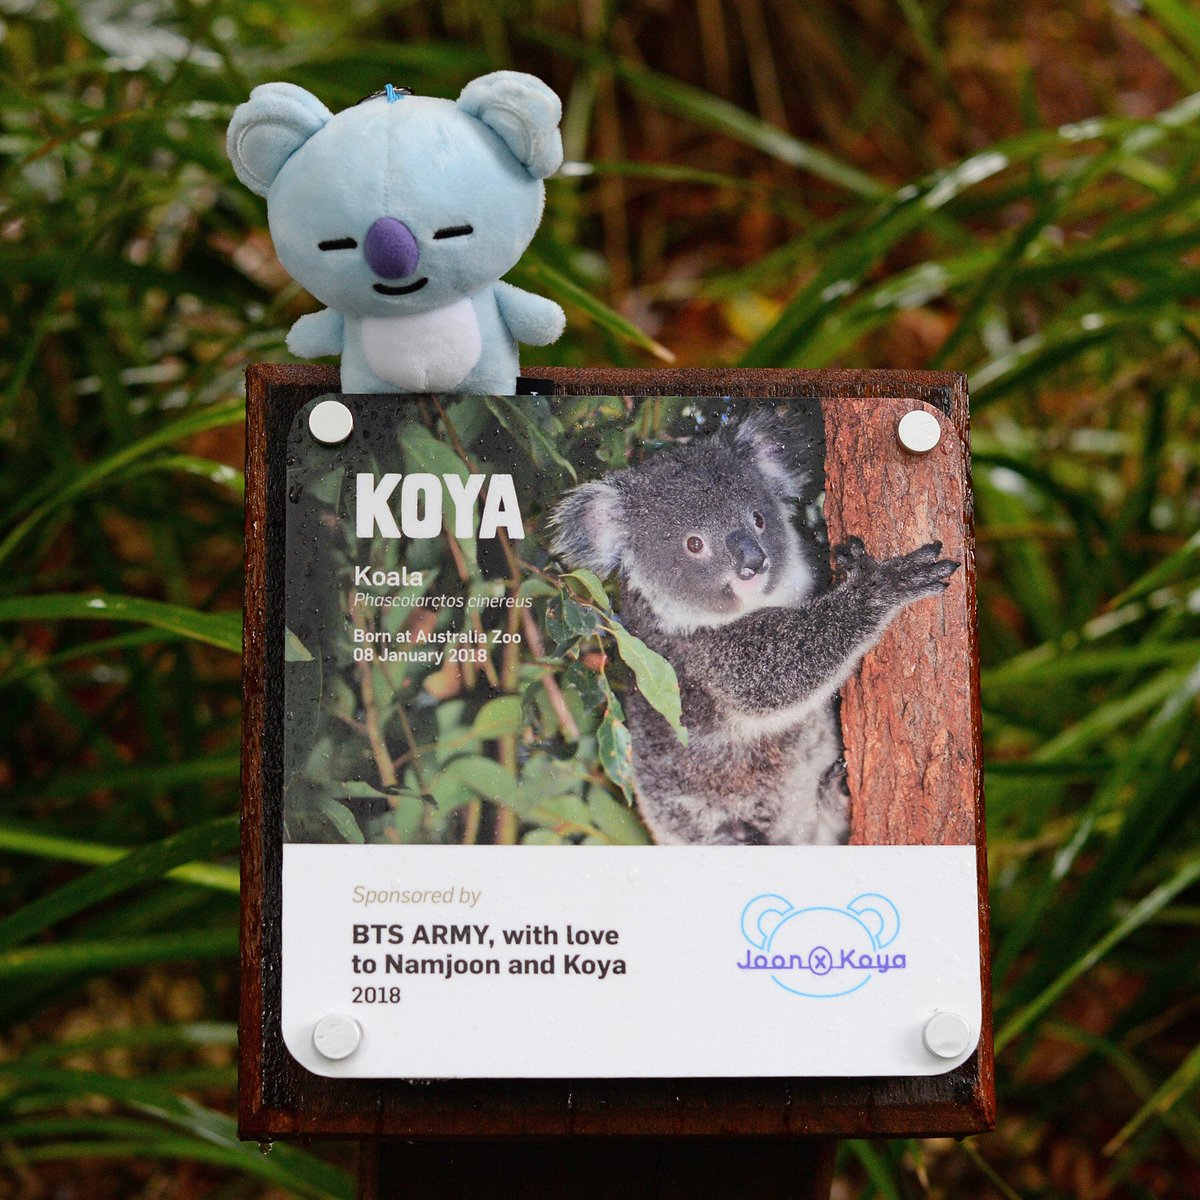 Introducing Koya the koala joey🐨Koya received her name from the BTS ARMY Australia in honour of Namjoon from the band, #BTS, who created the cartoon character 'Koya.' This gorgeous girl is loving life here at #AustraliaZoo where she will sleep up to 20 hours a day! What a cutie!